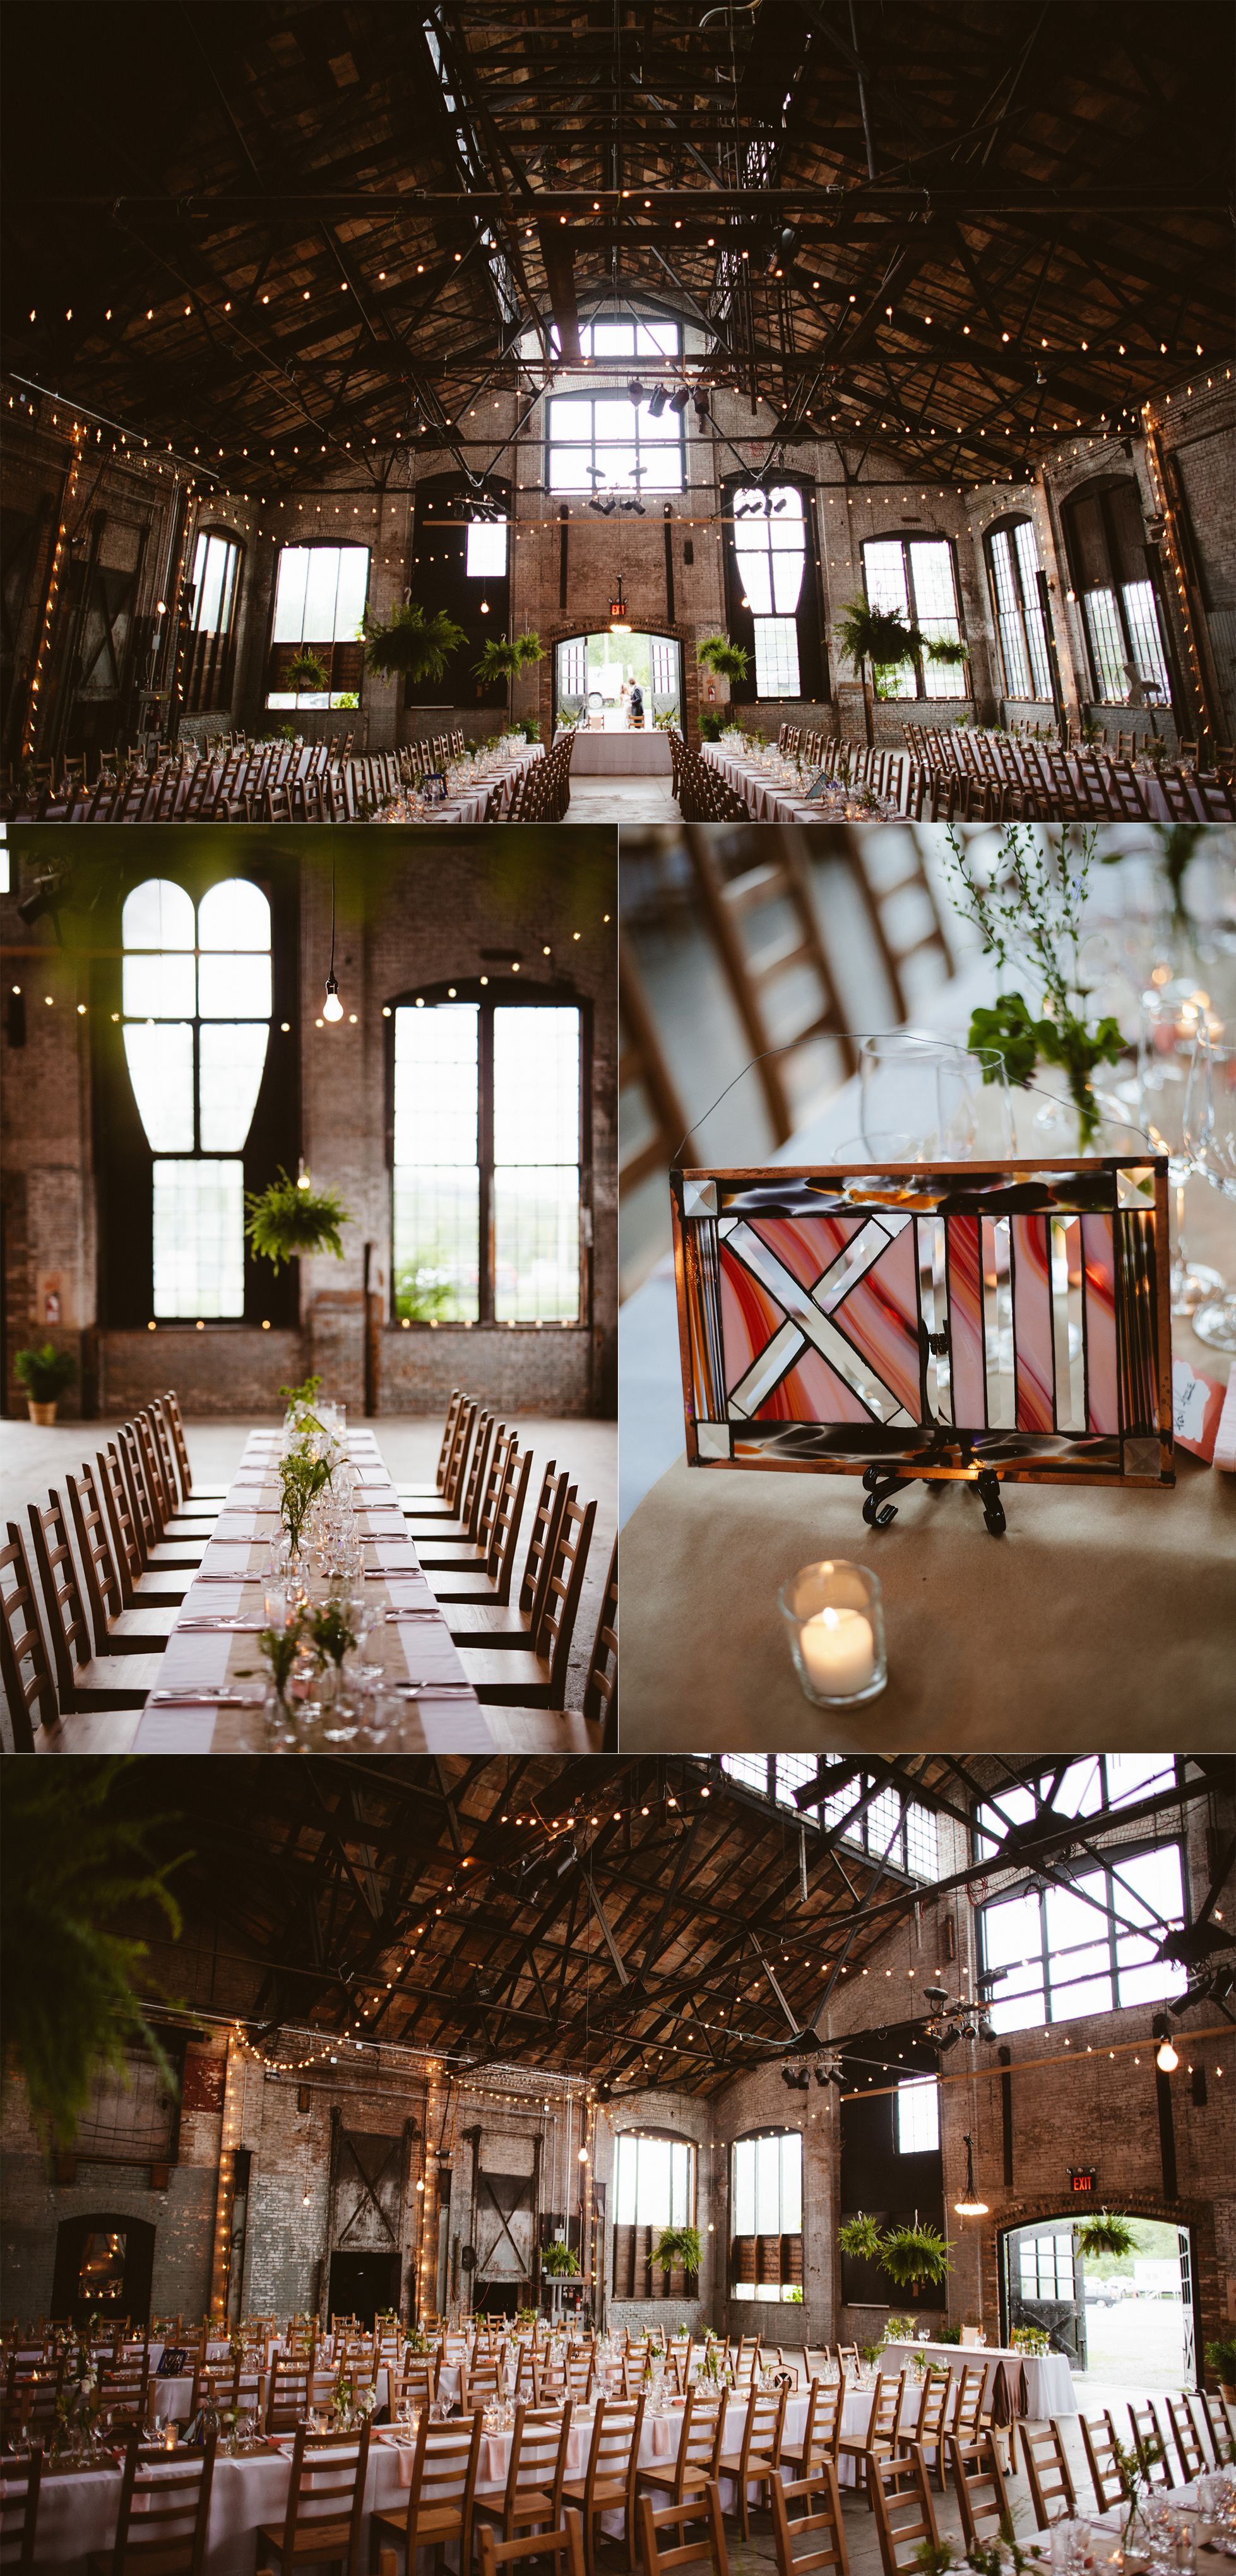 The Feel Of Building Itself Has Remained Through Renovations Sporting Exposed Brick Walls An Incredible Old Steel Truss System And A